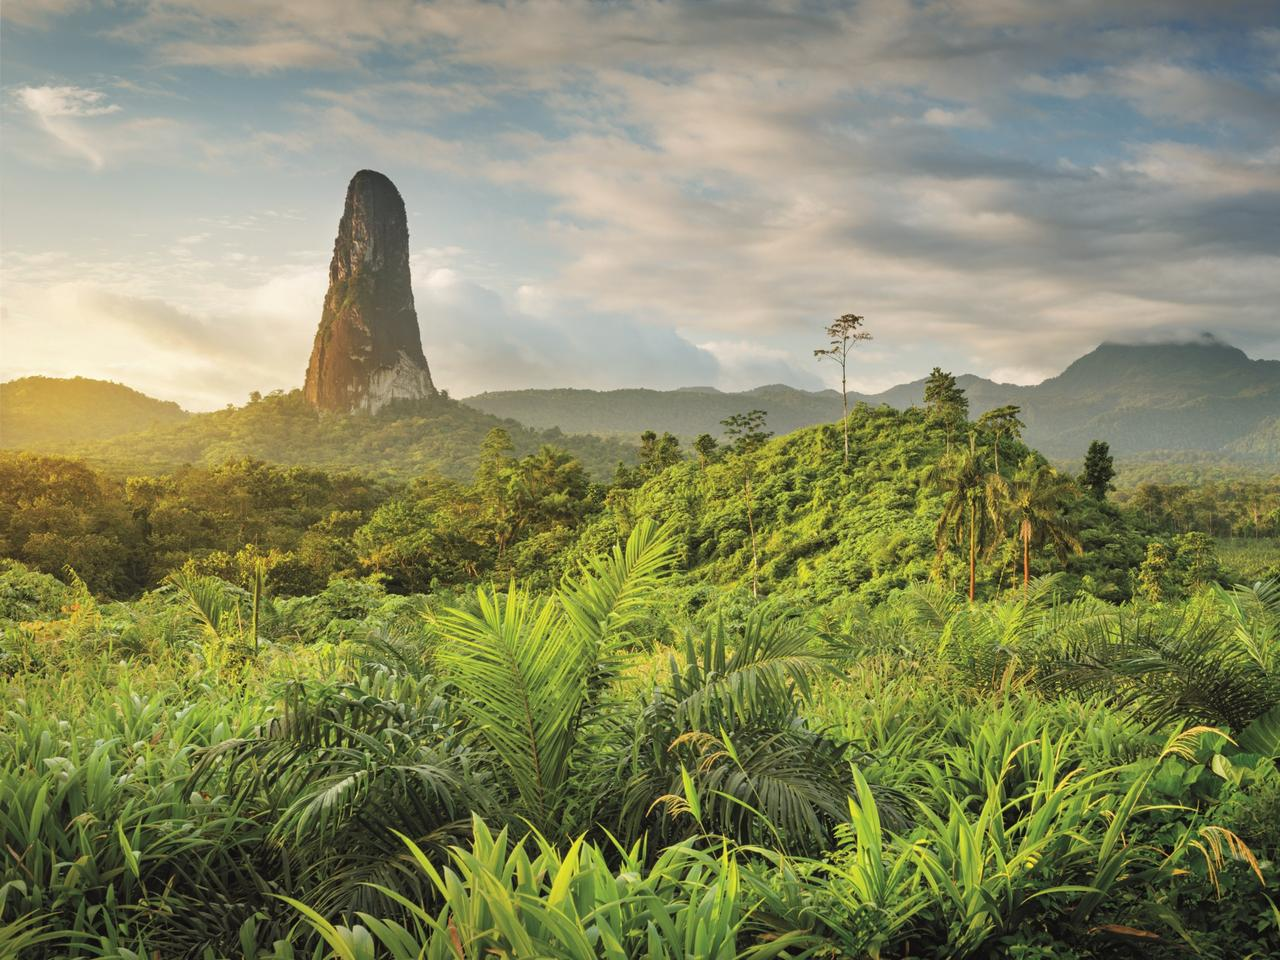 The 668m-high Pico Cao Grande rock tower on Sao Tome Island. Picture: Justin Foulkes / Lonely Planet